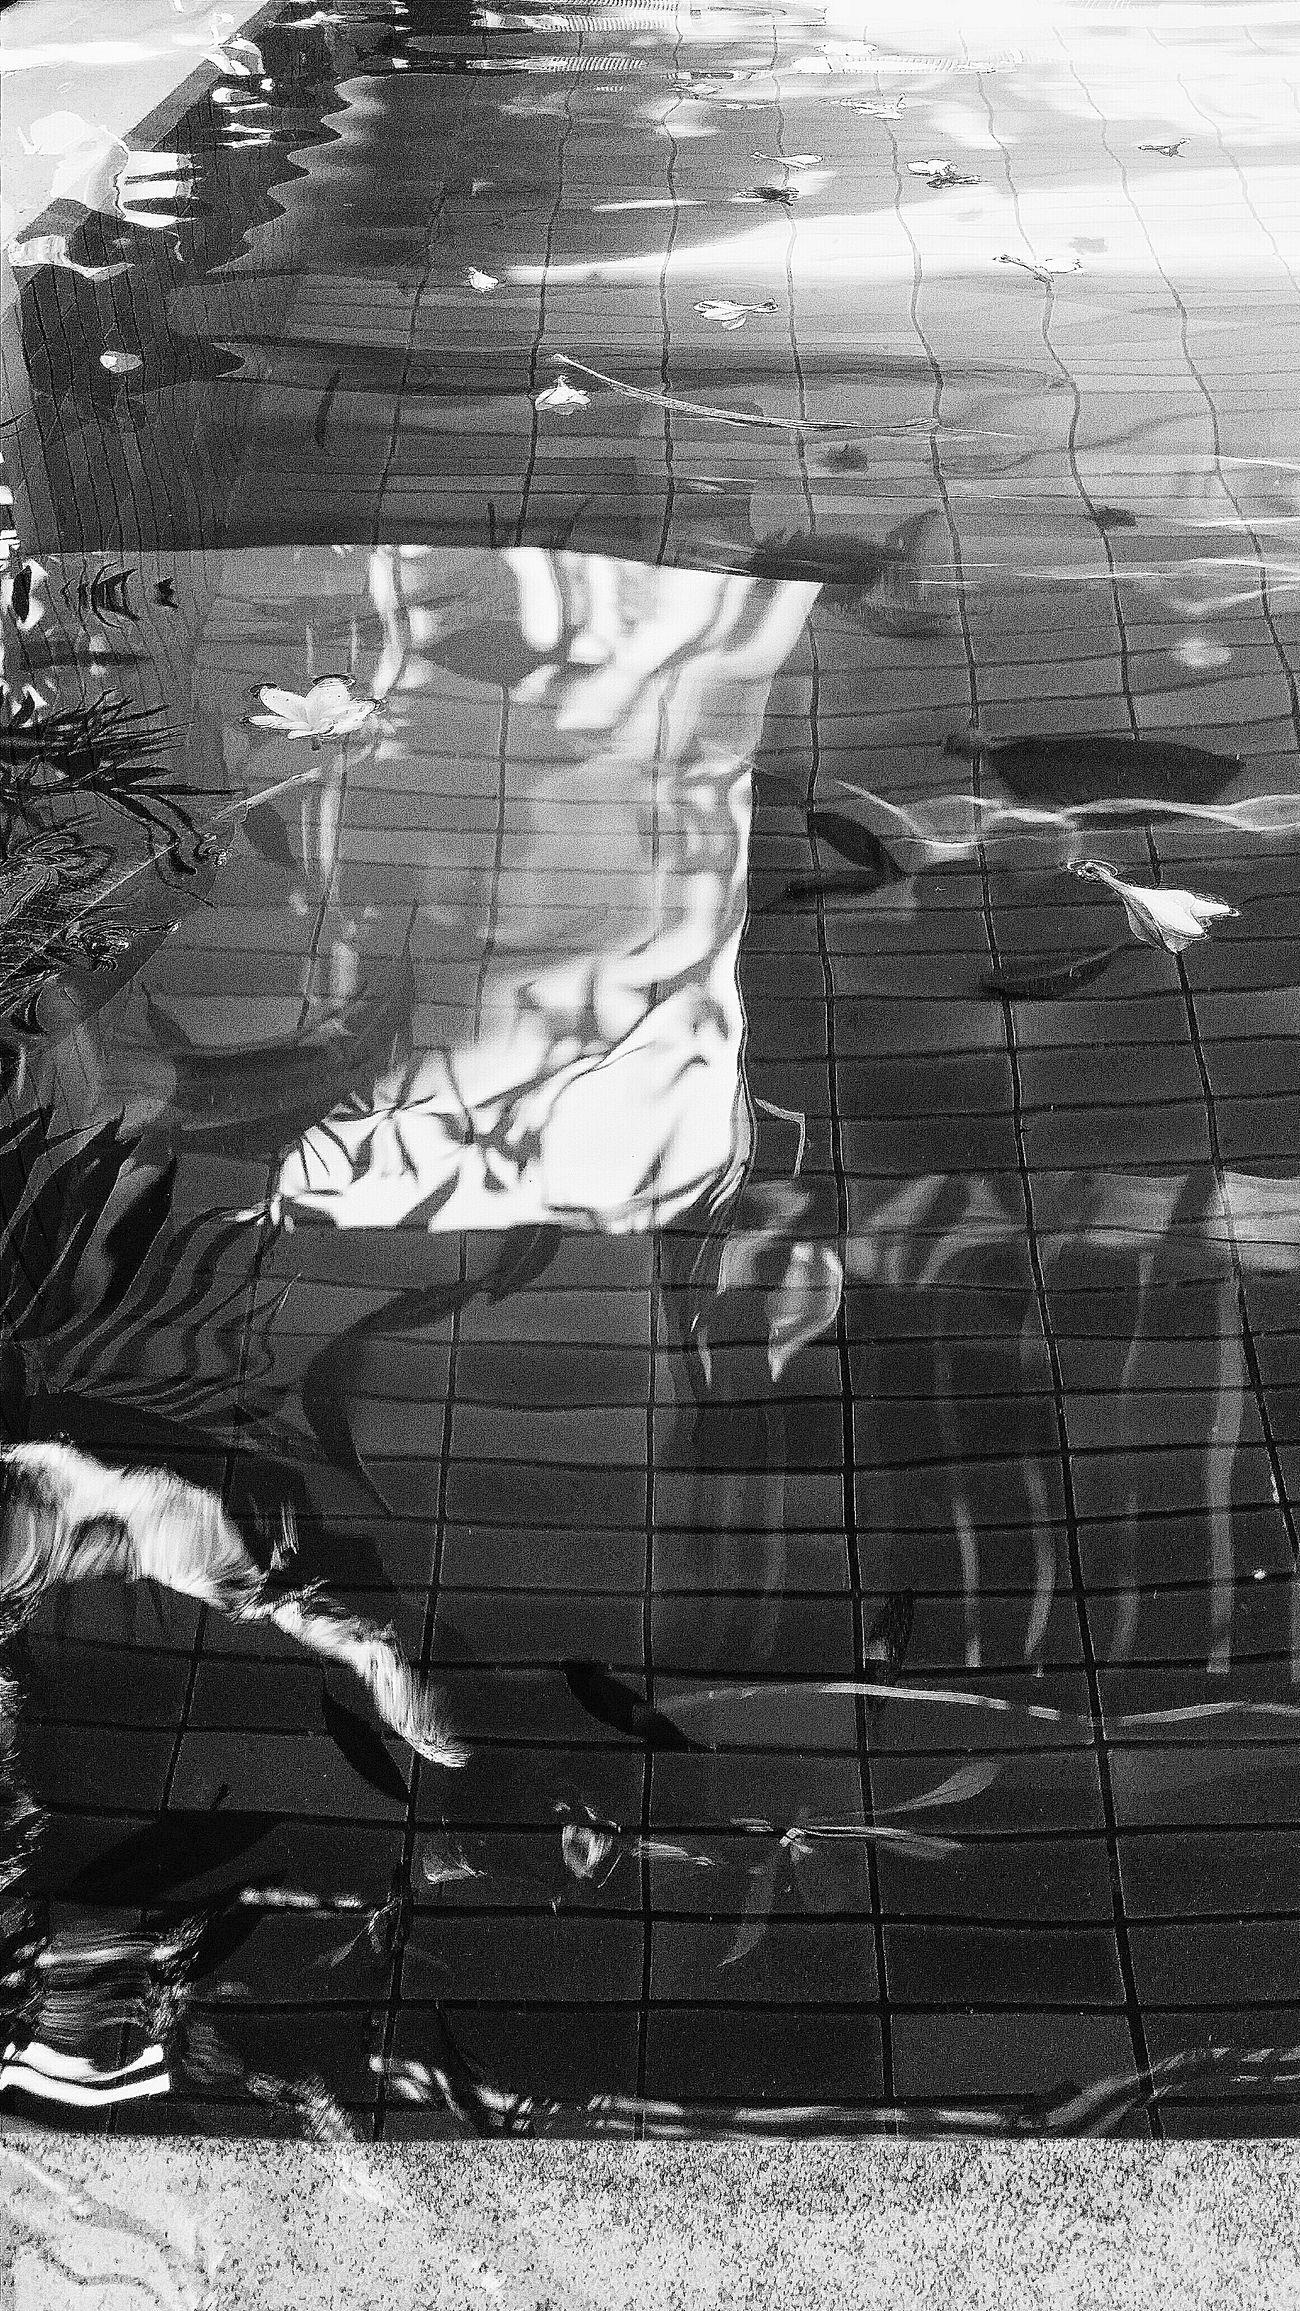 Pool Water Reflections Water Reflections Maenam Koh Samui Thailand Travelphotography Bnw Bnwcollection Bnwphotography Bnw_captures Bnw_life Bnw_travel Bnw_world Bnw_kohsamui Bnw_thailand Eyeemkohsamui Eyeemthailand Eyeemcollection Eyeemphotography